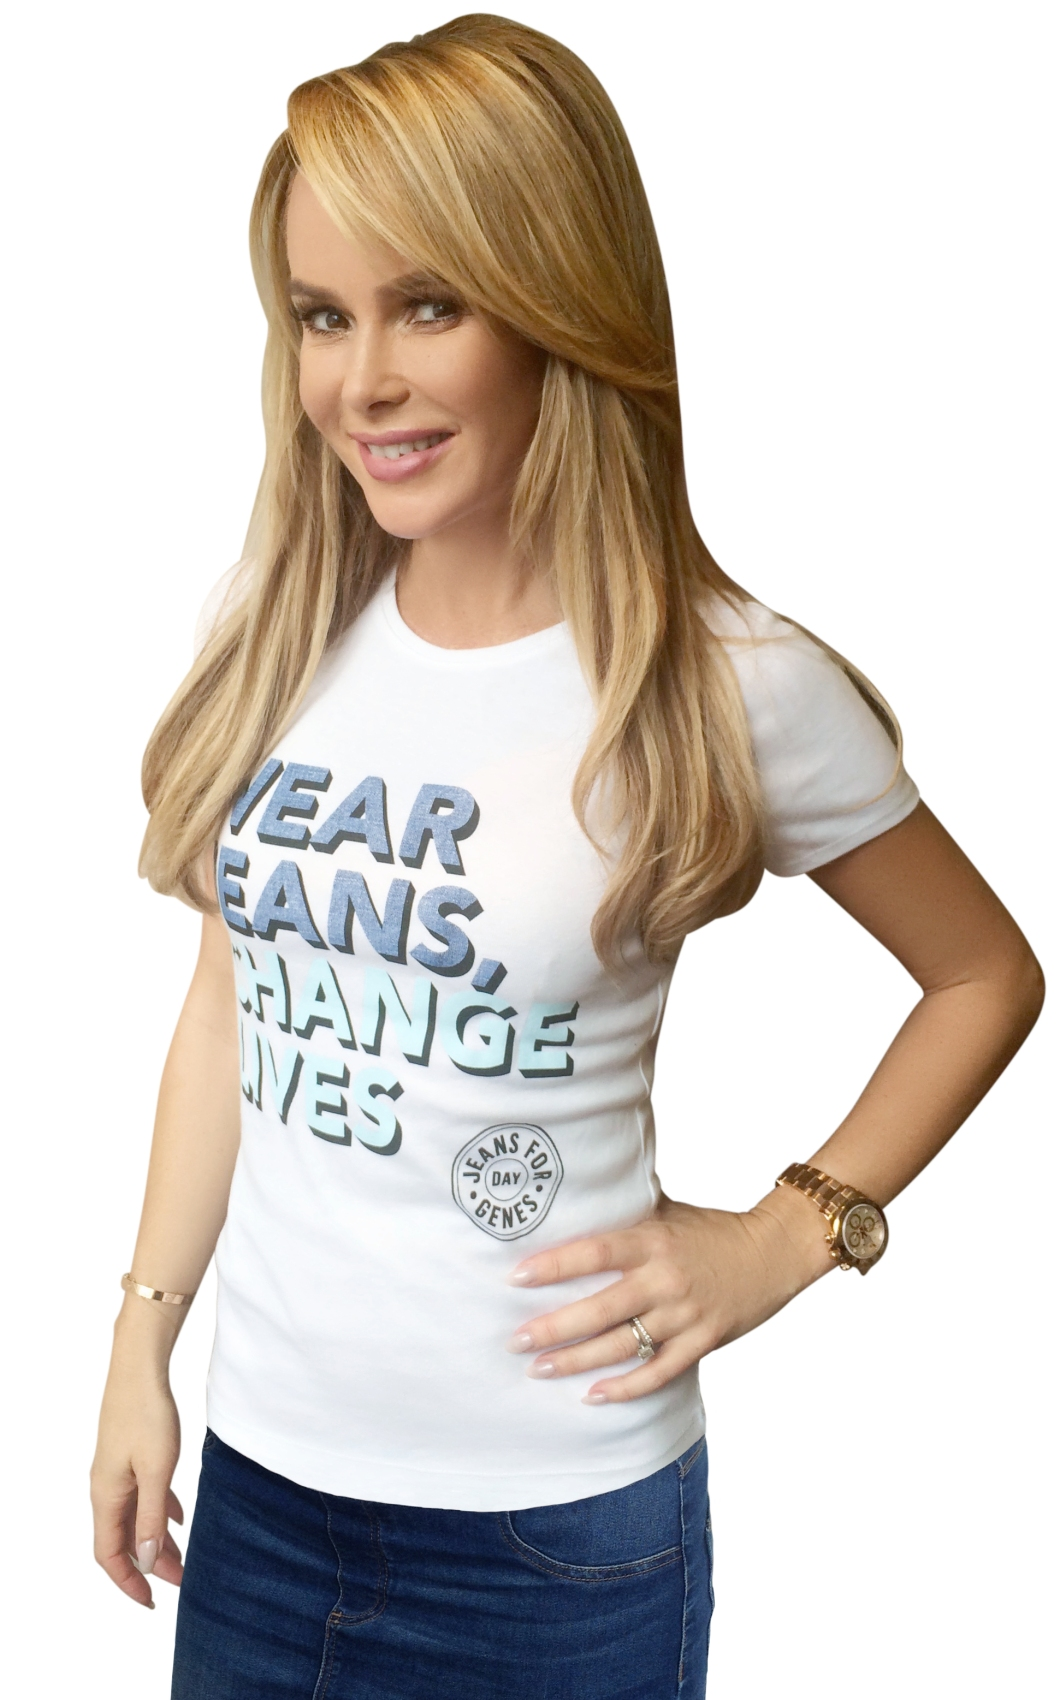 Amanda Holden in Jeans for Genes white campaign t-shirt final (online use only)